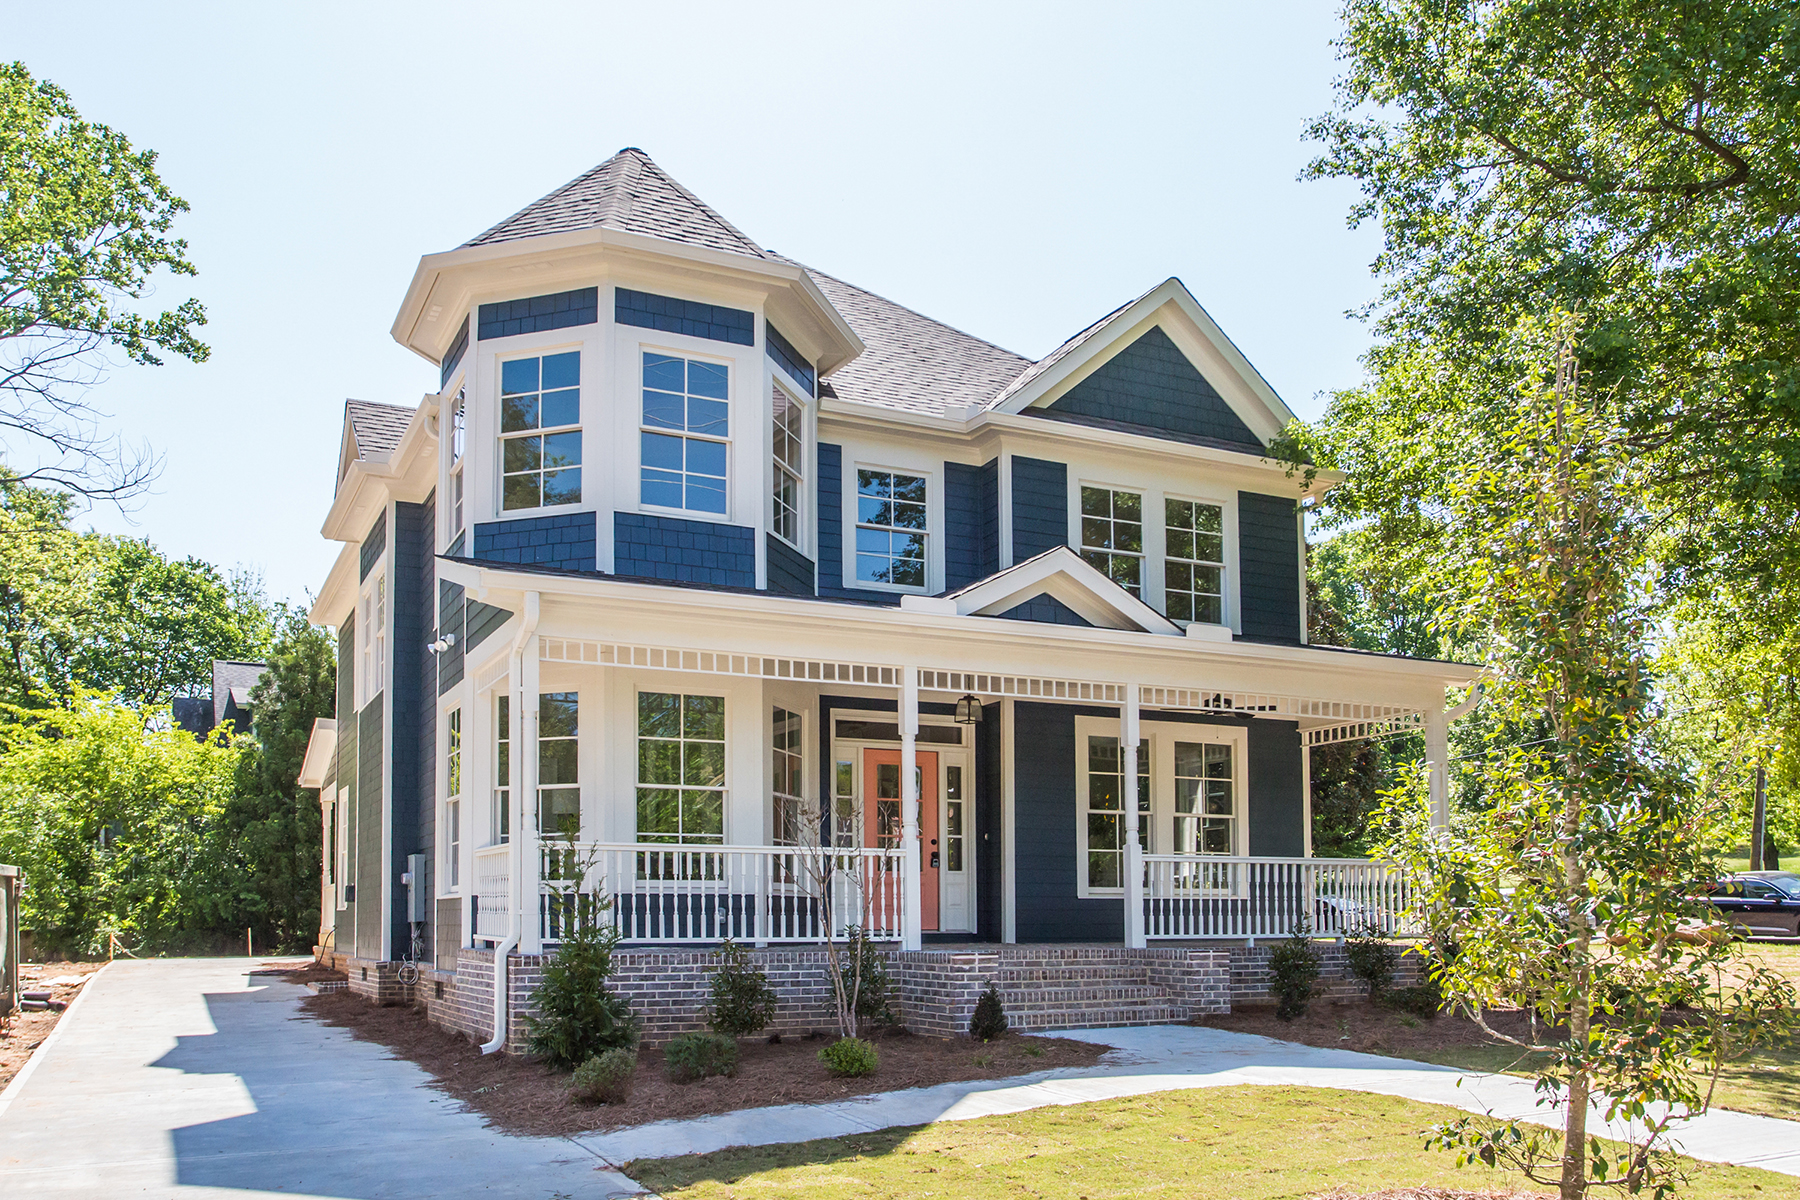 Single Family Home for Sale at Light-Filled Modern Victorian in Candler Park 621 Moreland Avenue NE Atlanta, Georgia 30307 United States